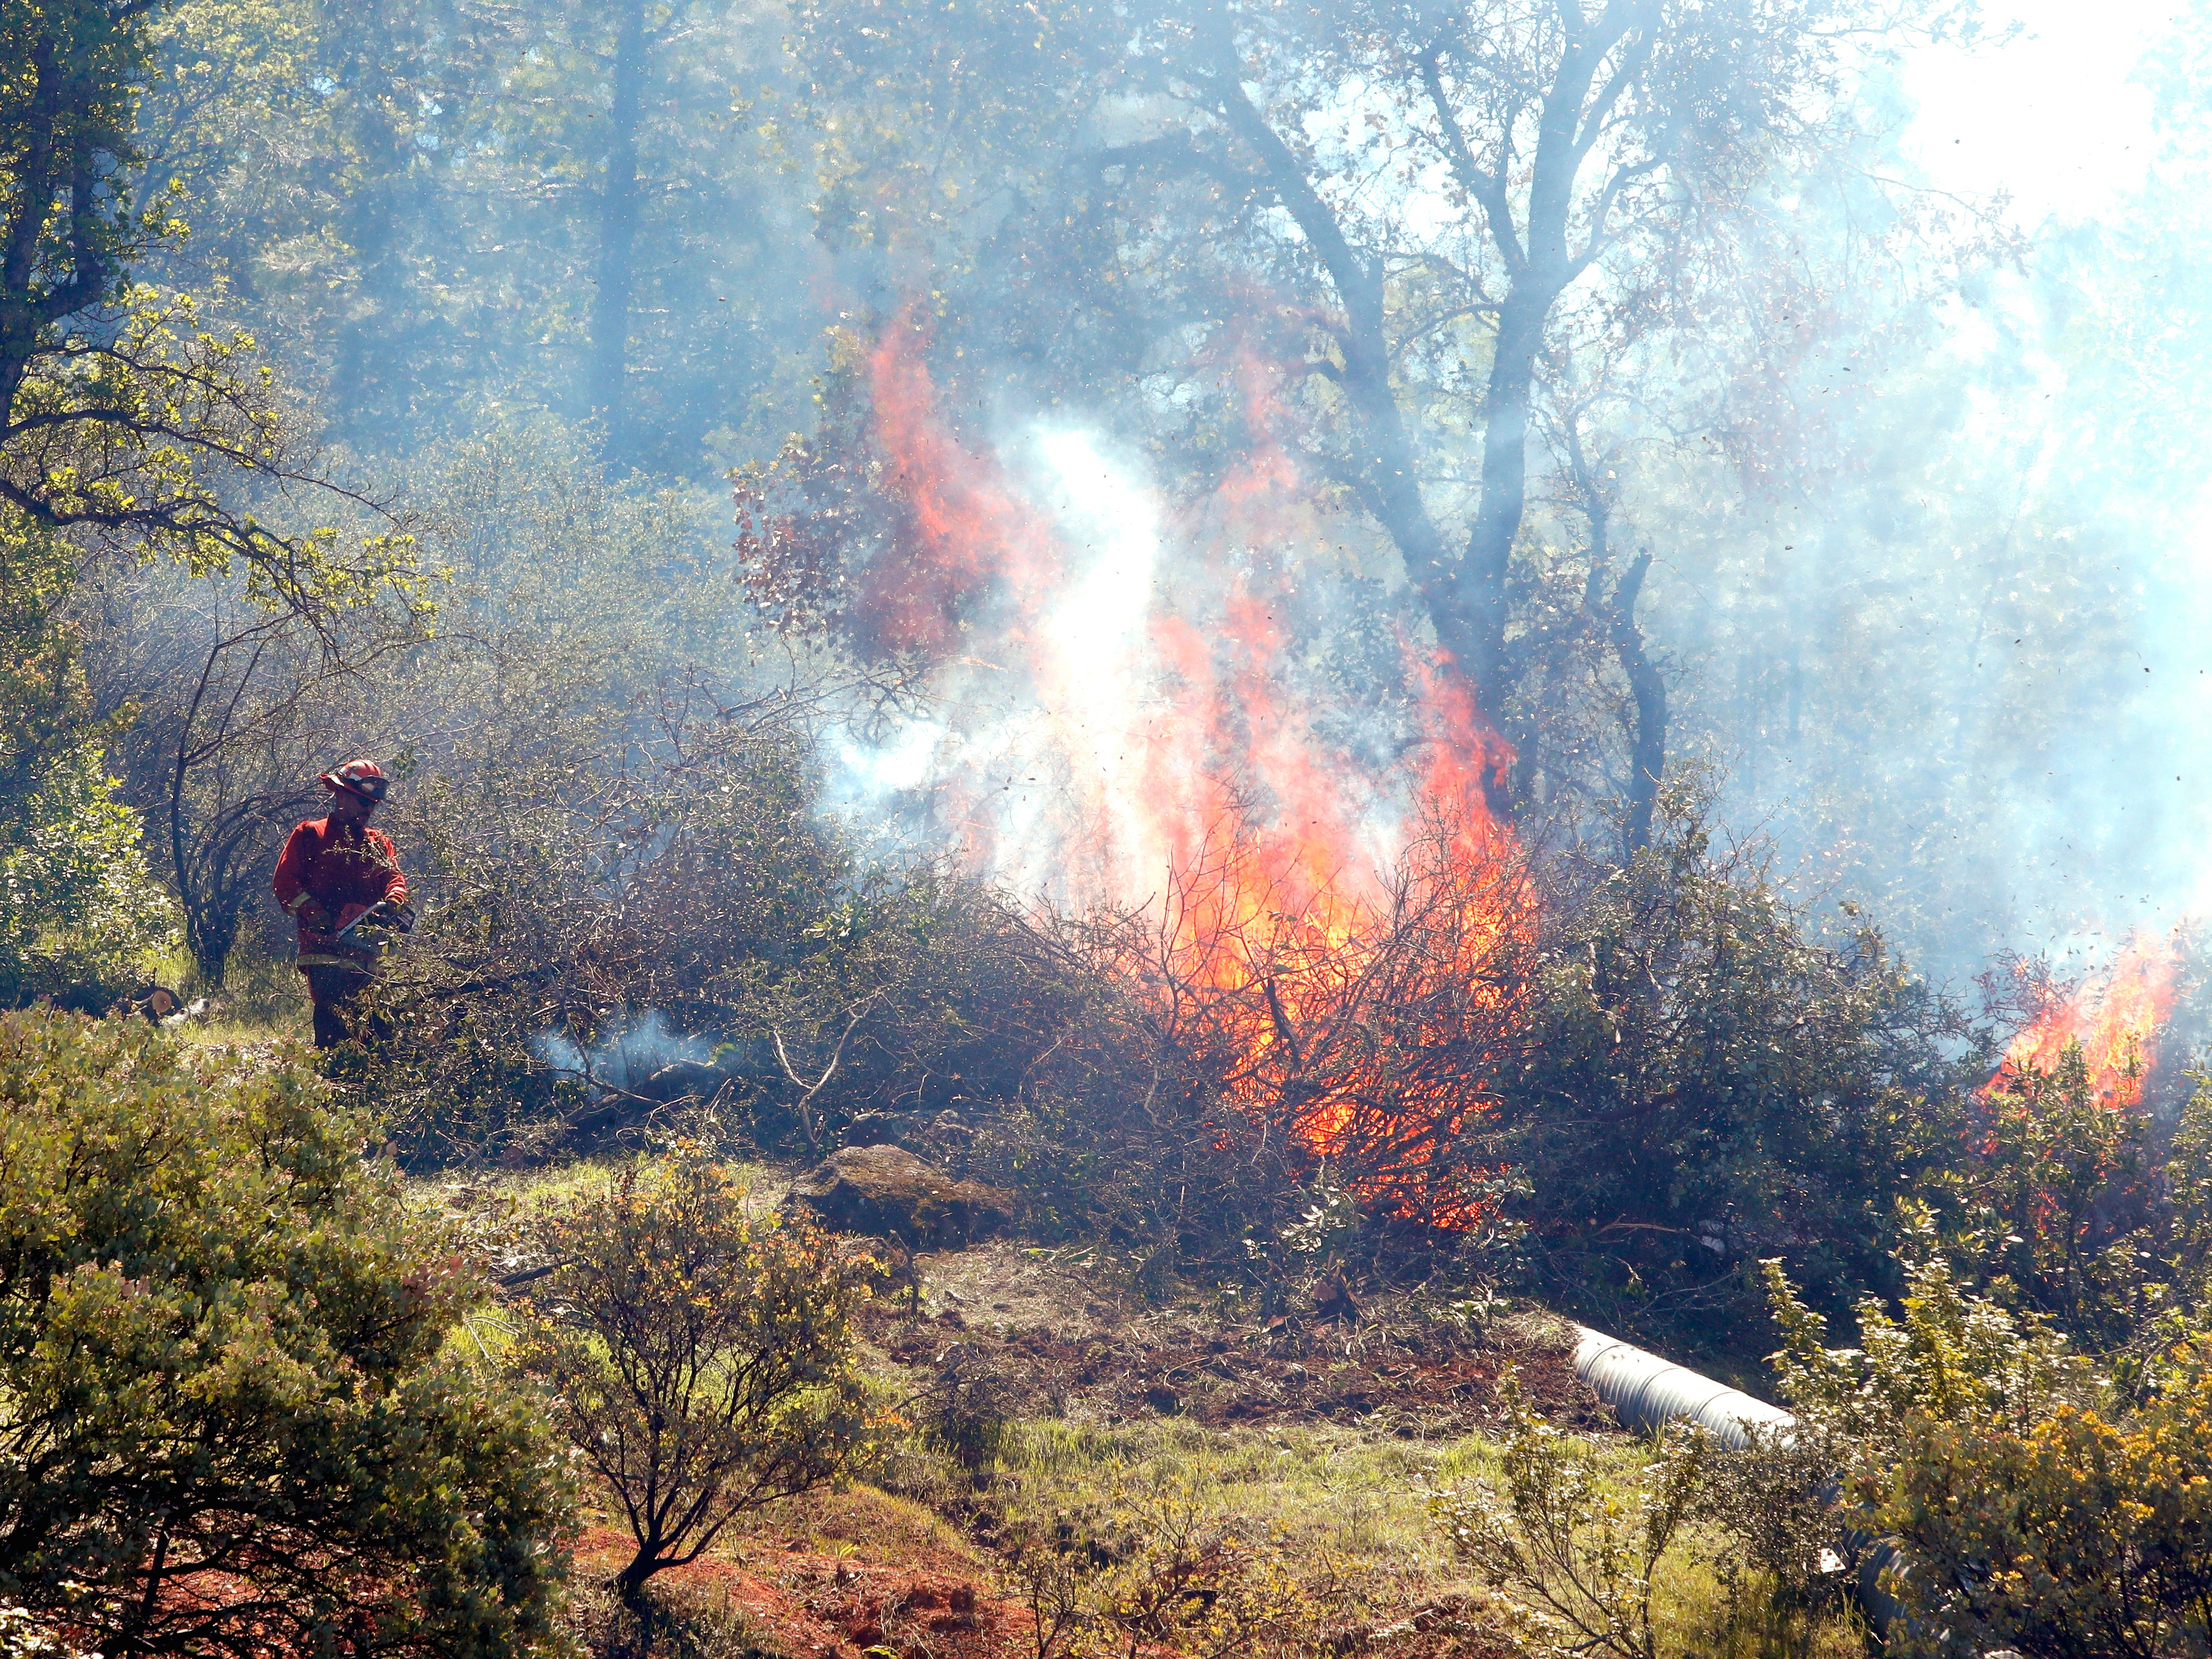 A crew from the Sugar Pine Conservation Camp burns brush on a hillside above Eureka Way as part of a fuel-reduction project in west Redding on Thursday, April 18, 2019.